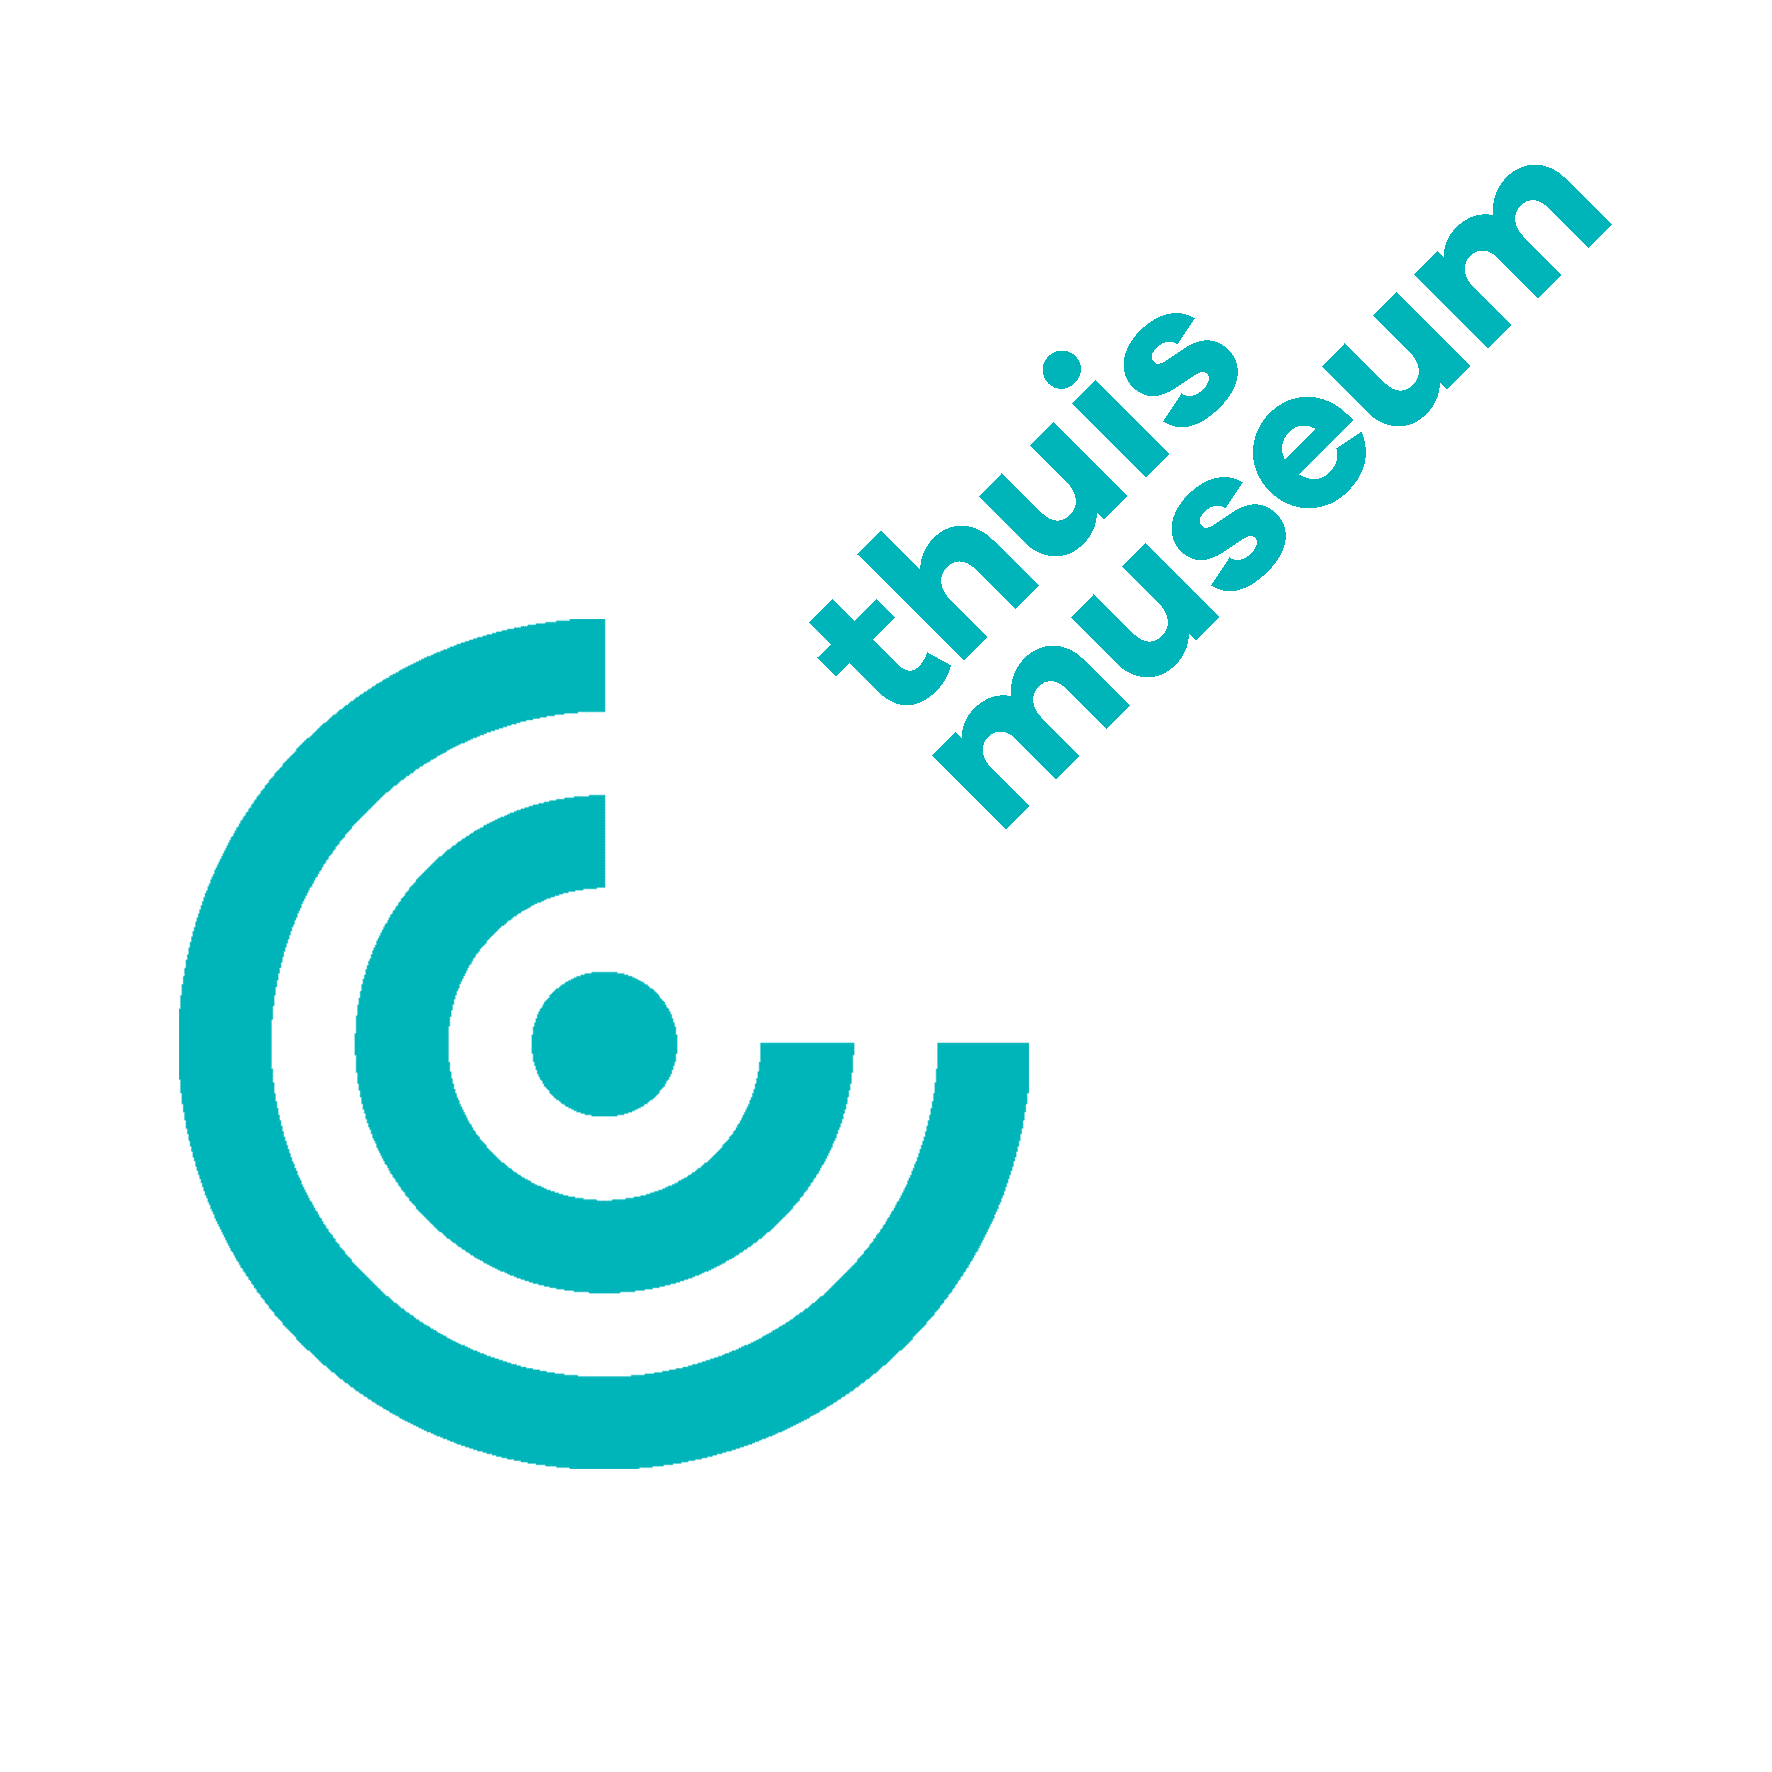 Thuismuseum